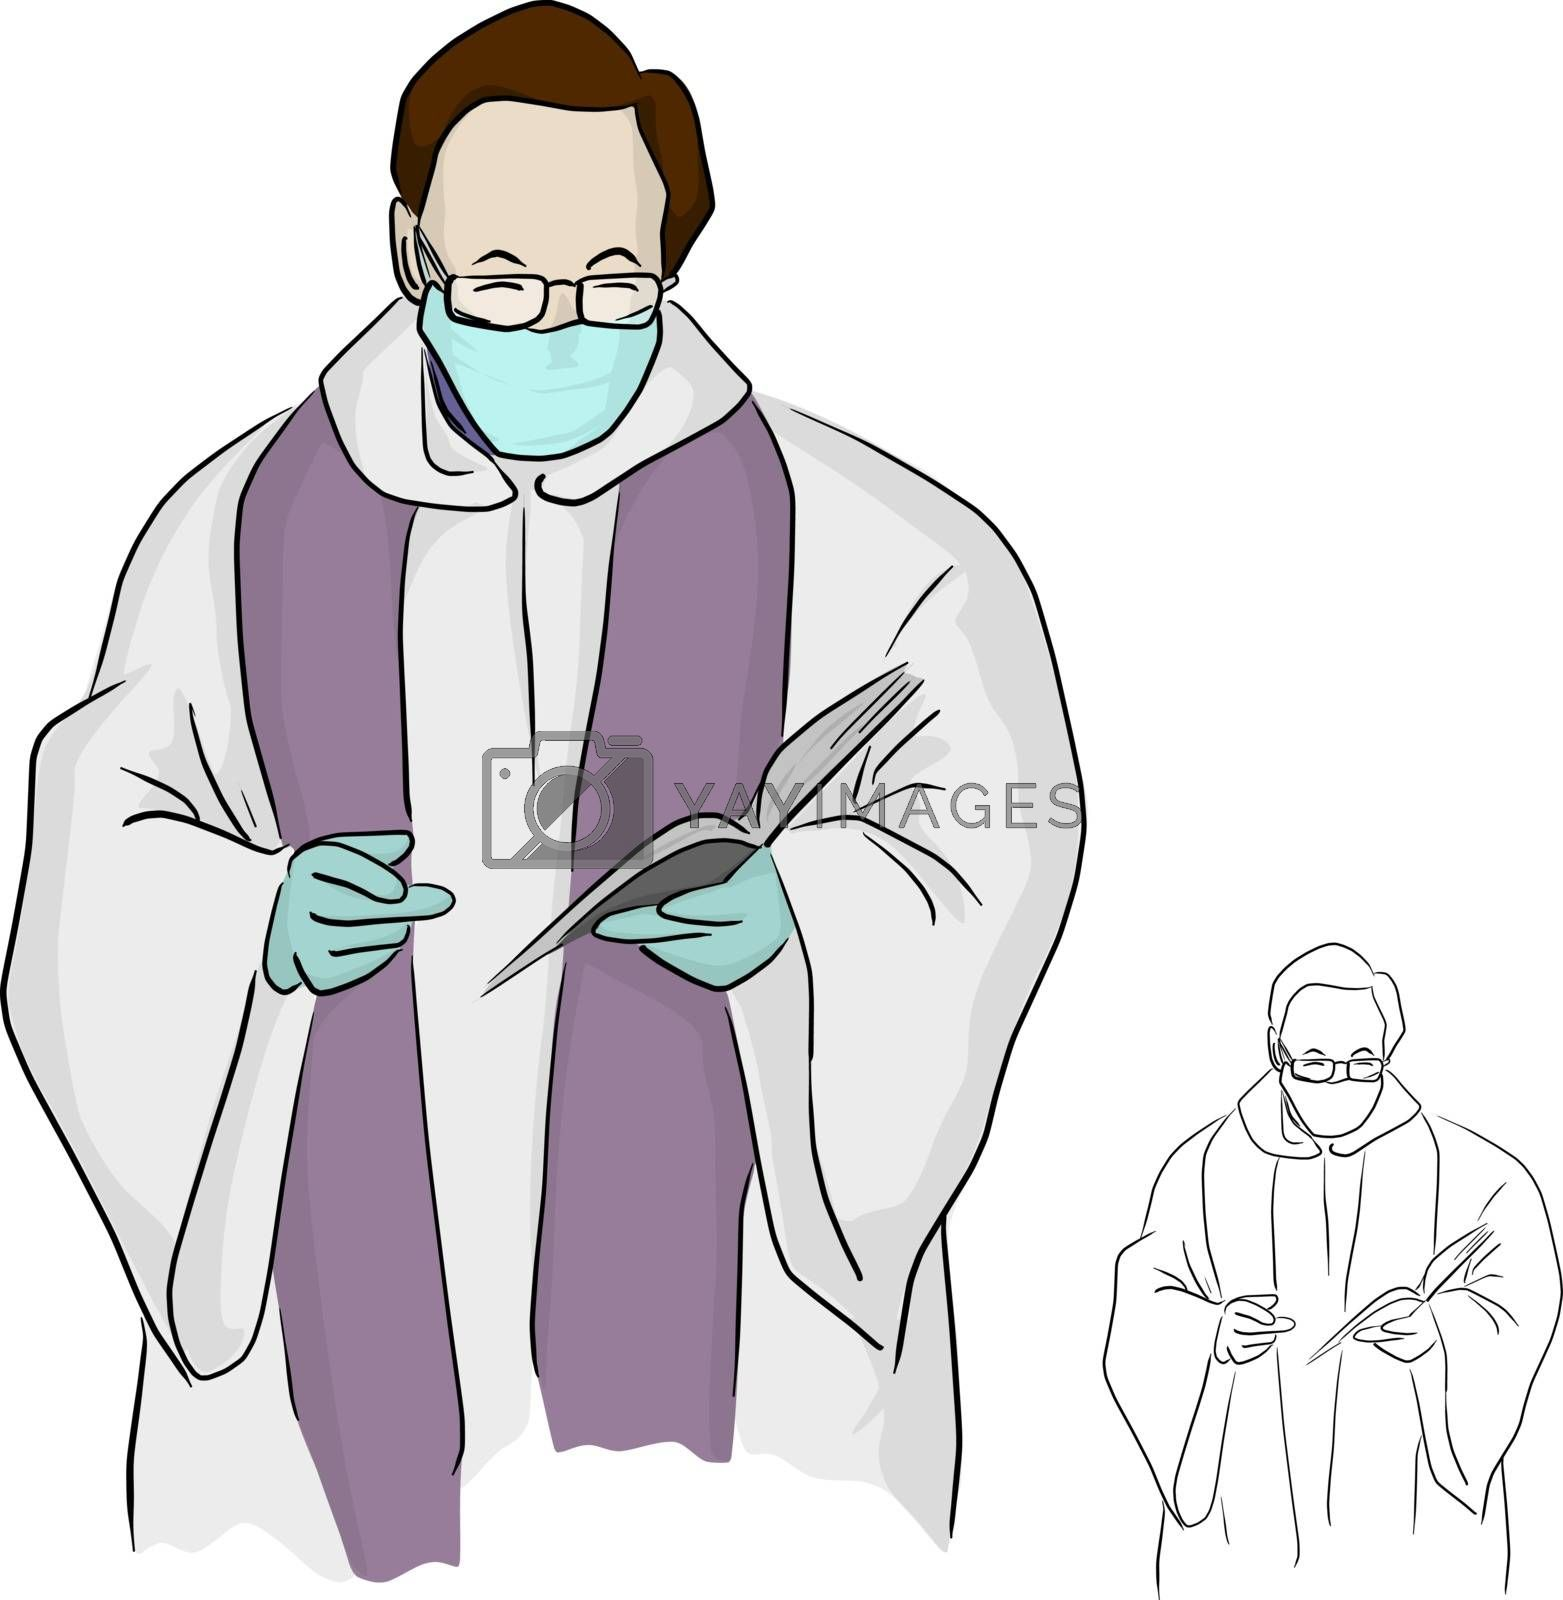 priest or pastor with surgical mask giving a funeral service in Covid-19 situation vector illustration sketch doodle hand drawn isolated on white background